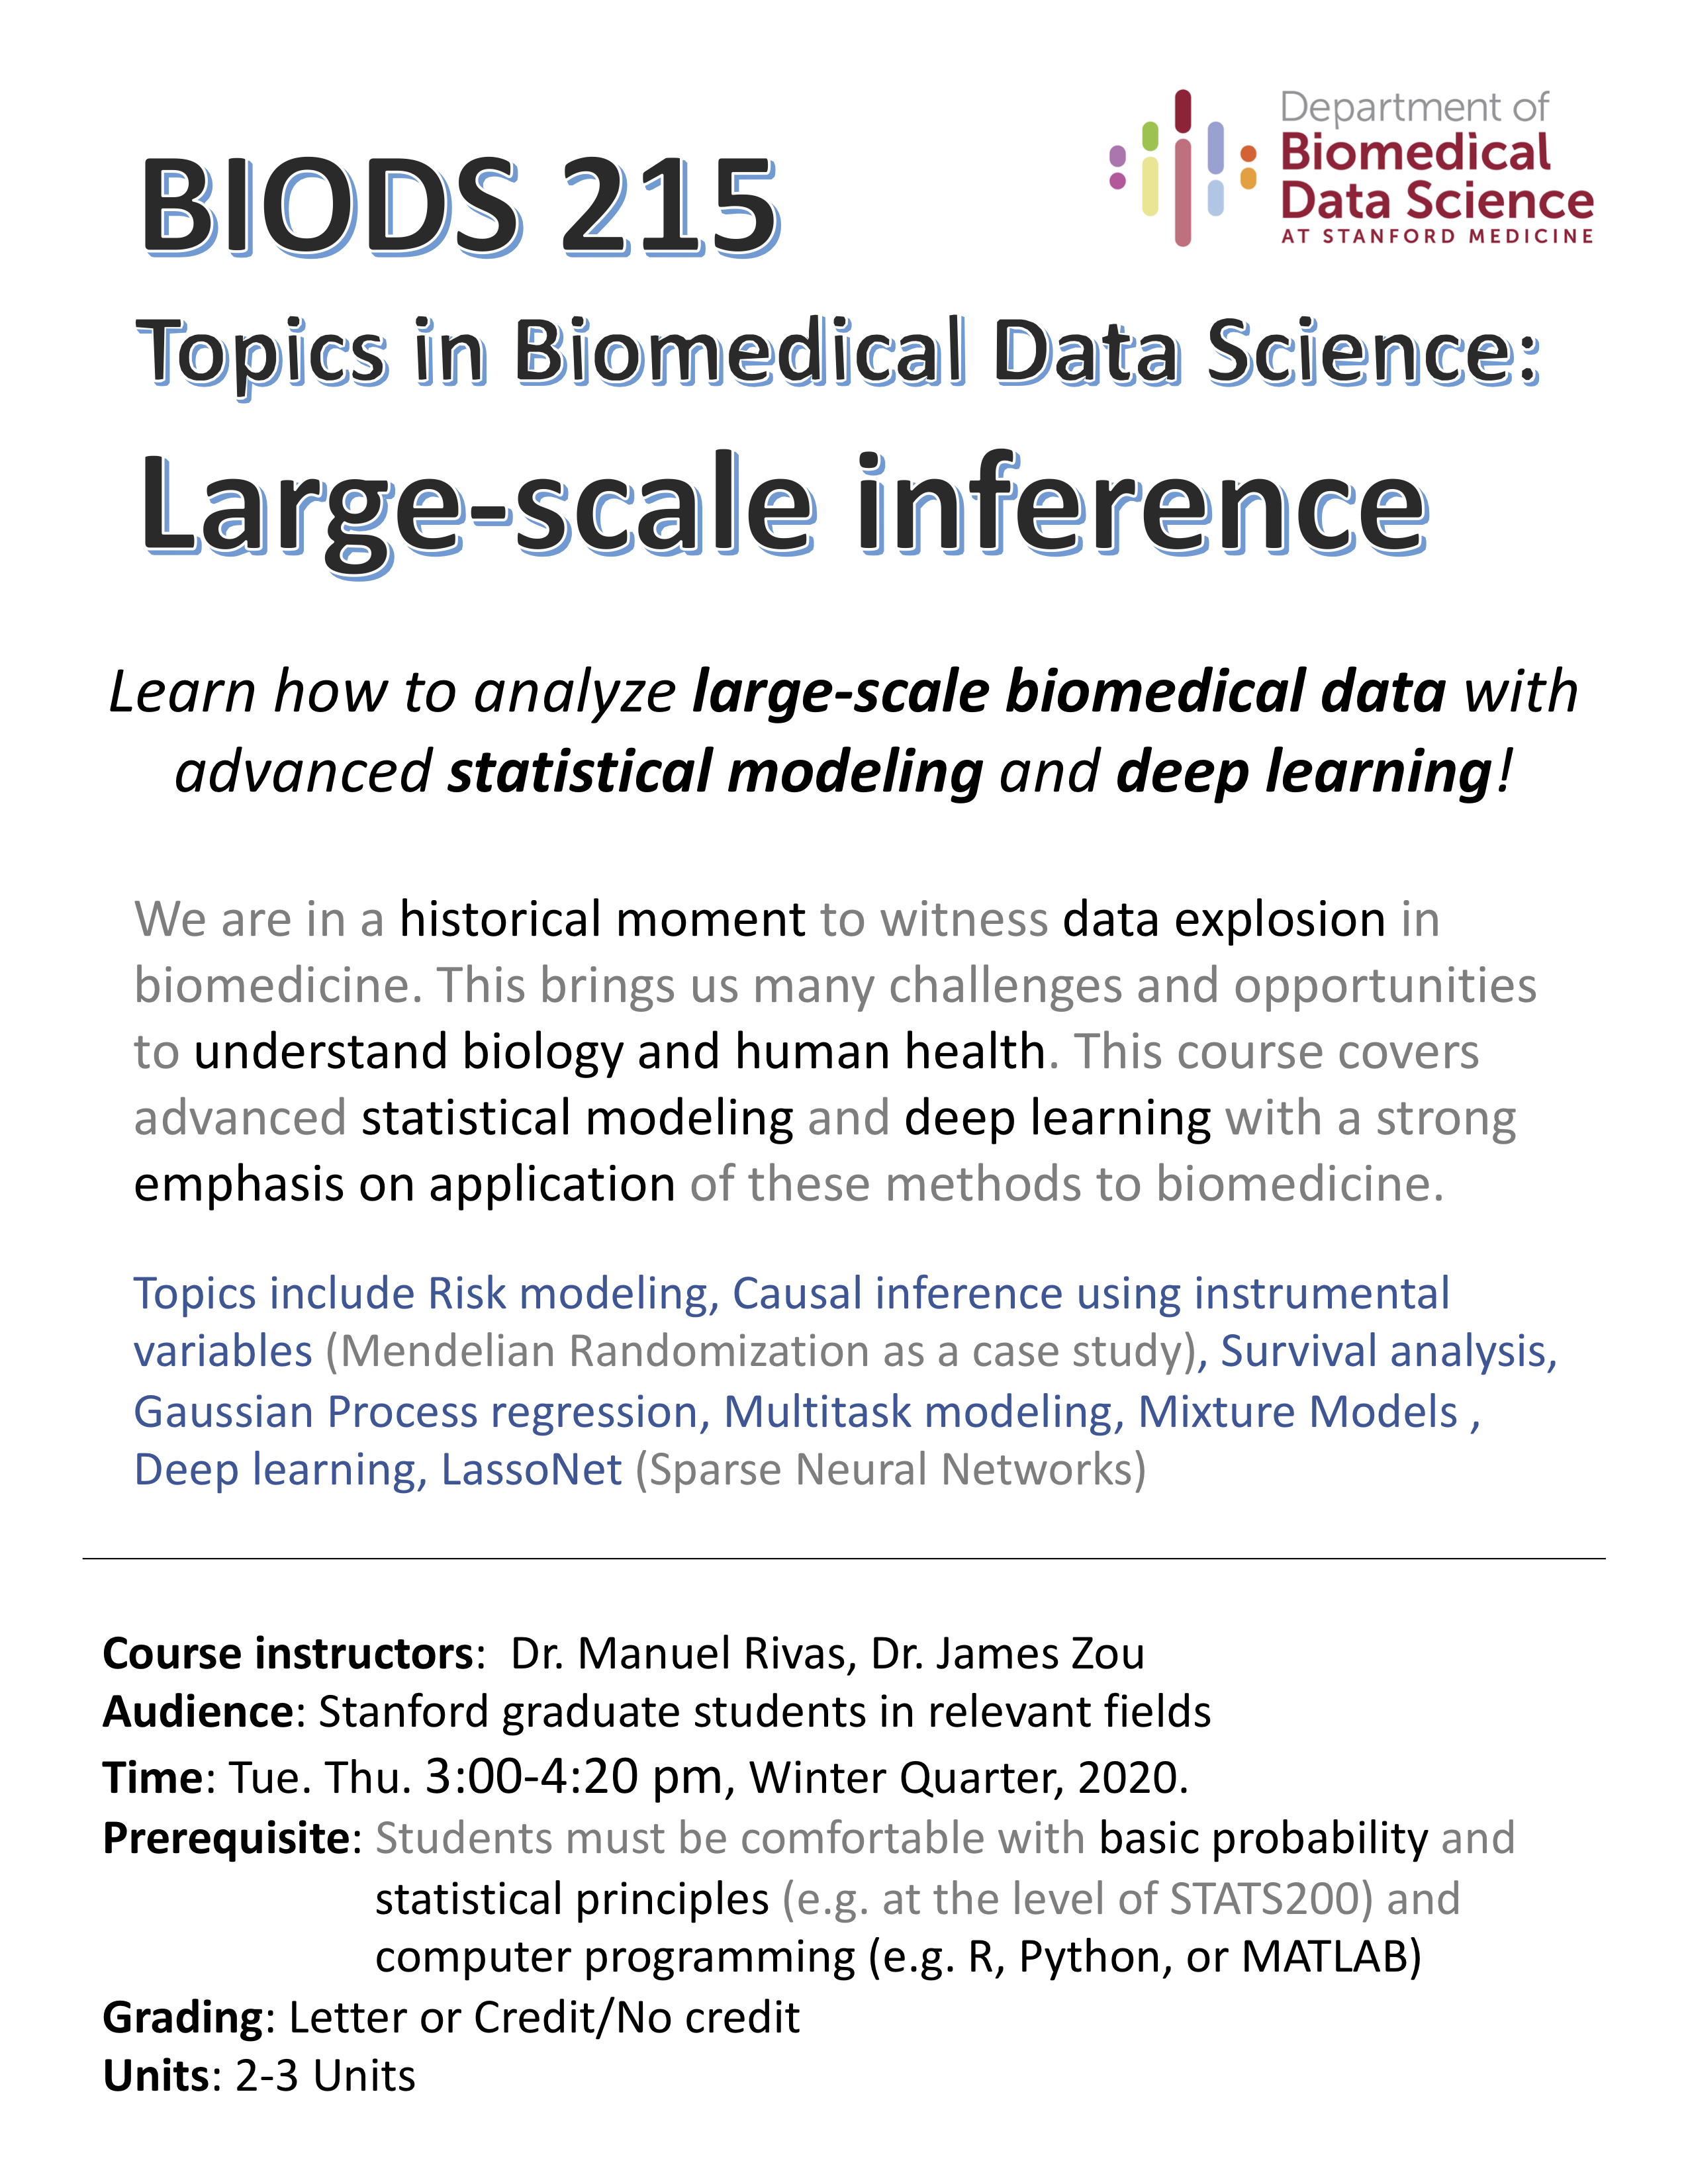 Course flyer for BIODS 215, Winter 2020